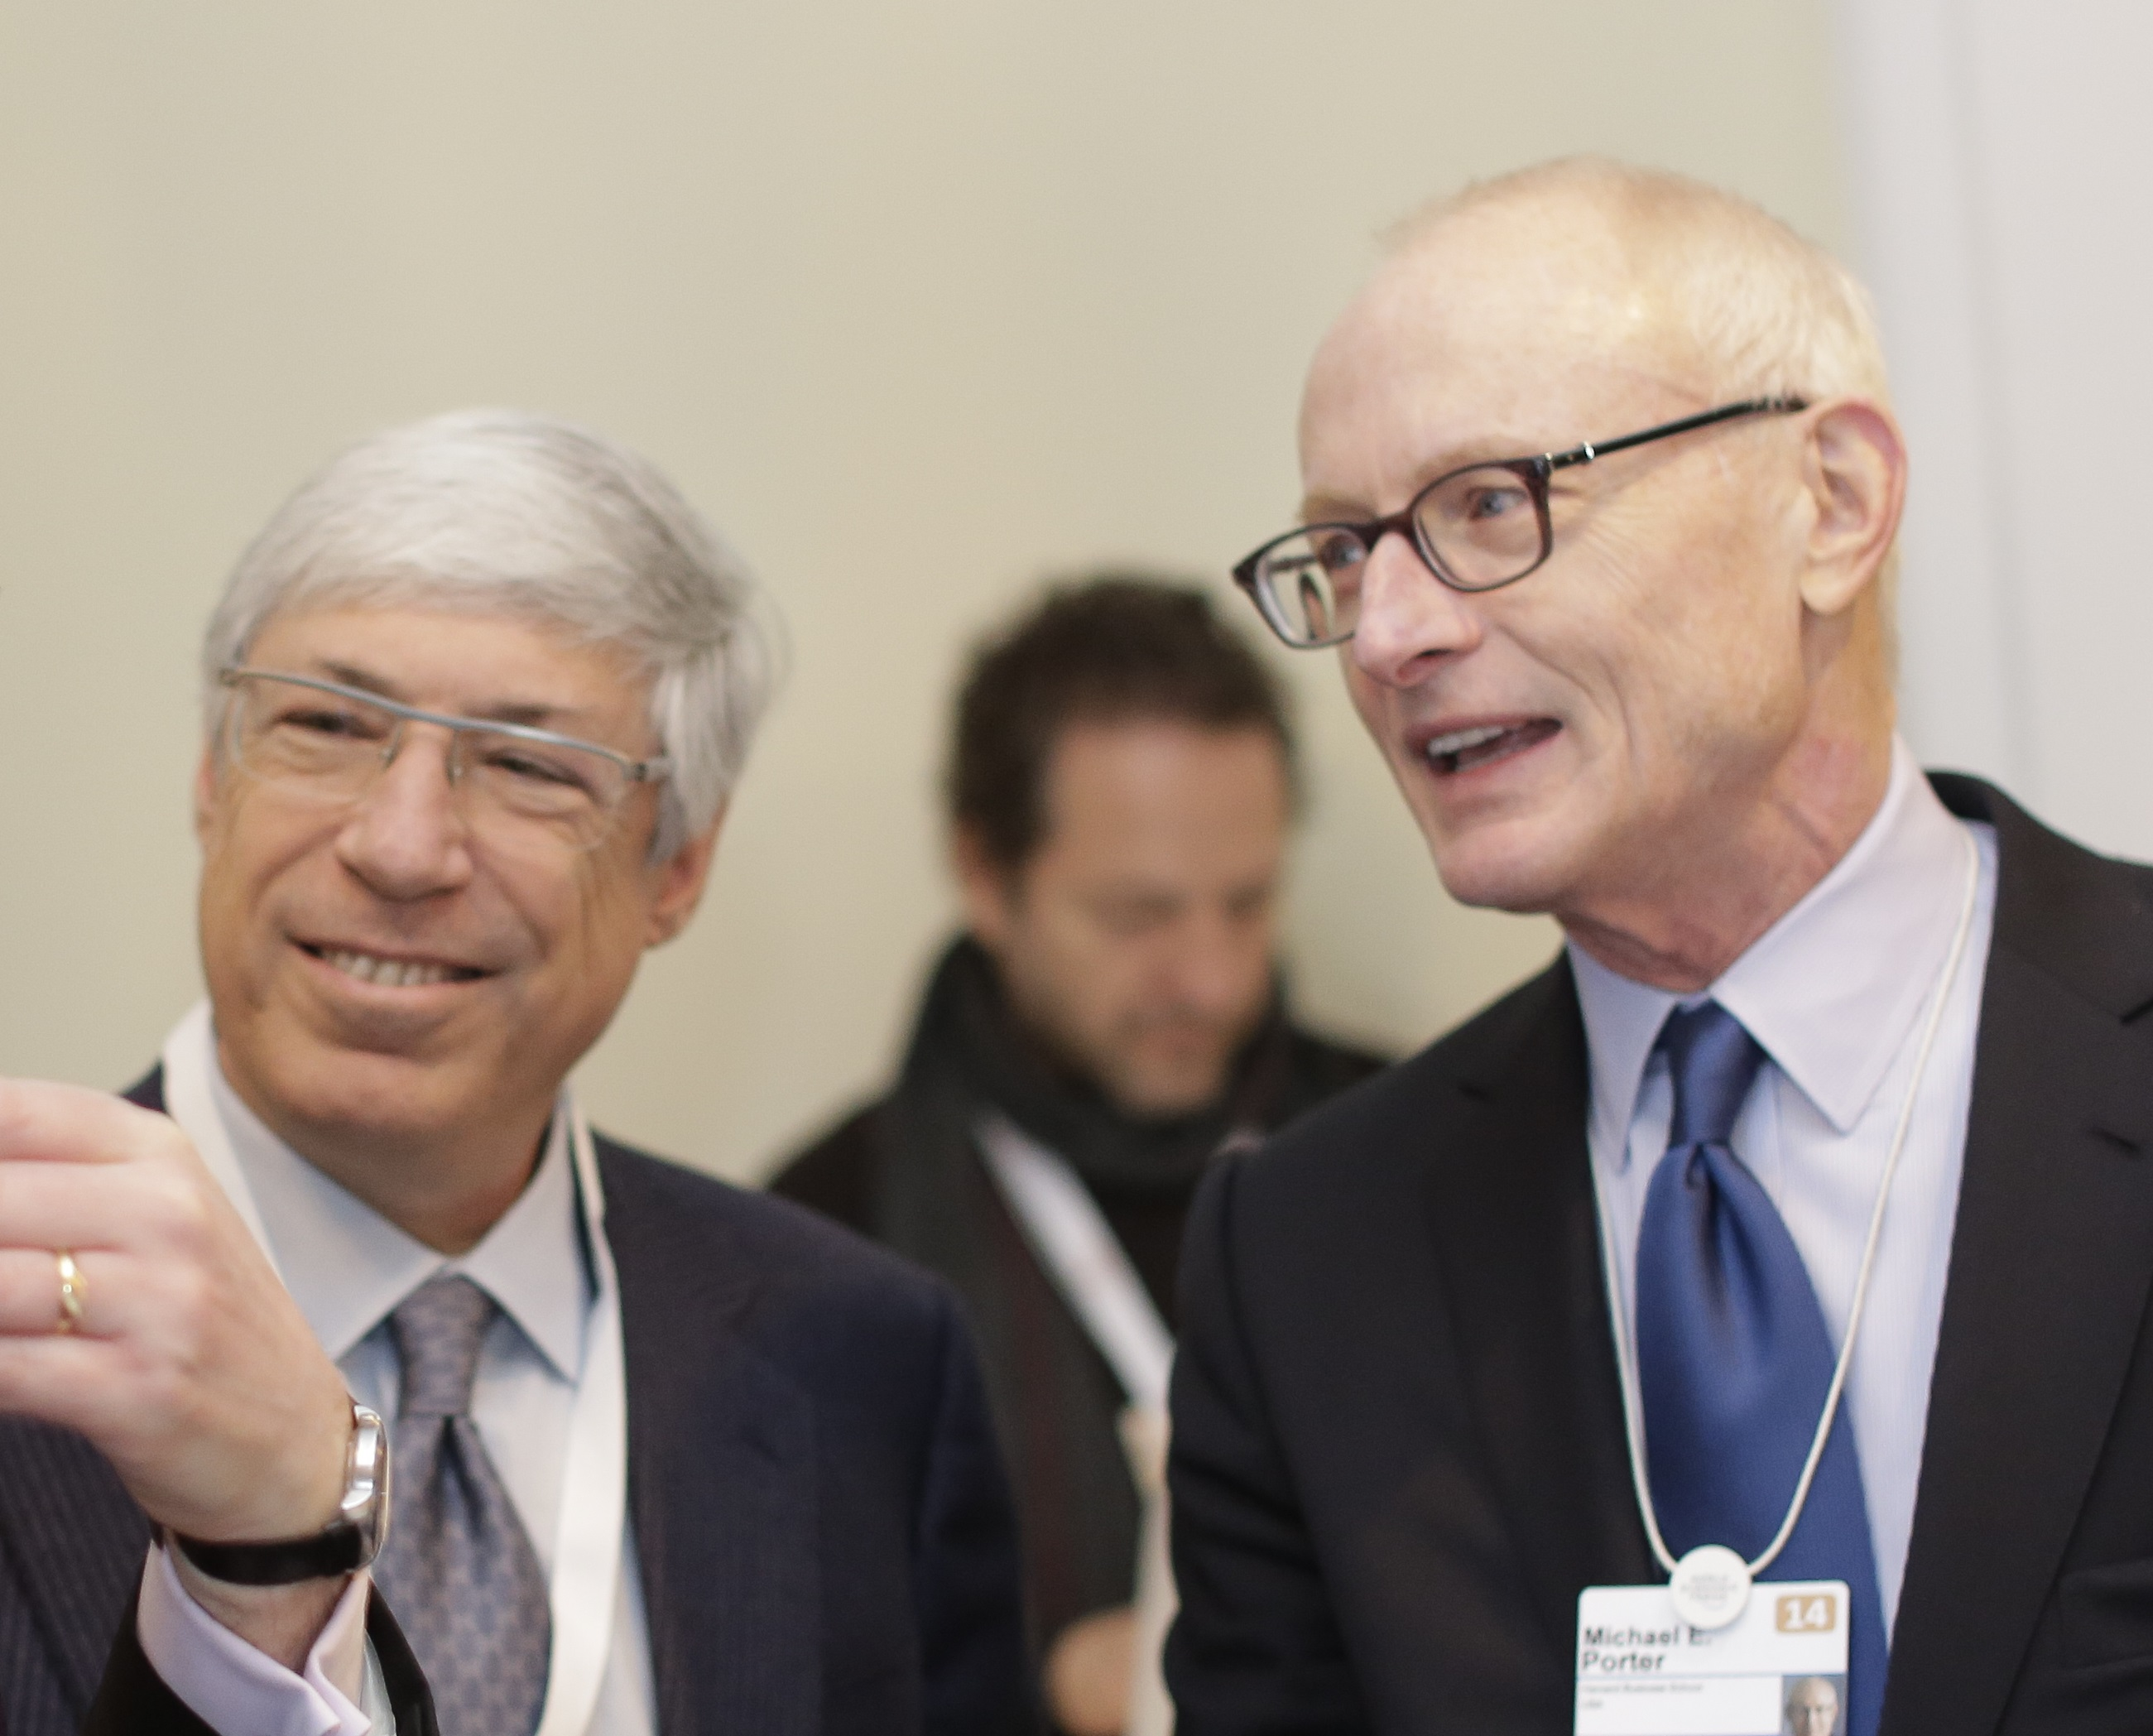 Mark Kramer, left, and Michael Porter.